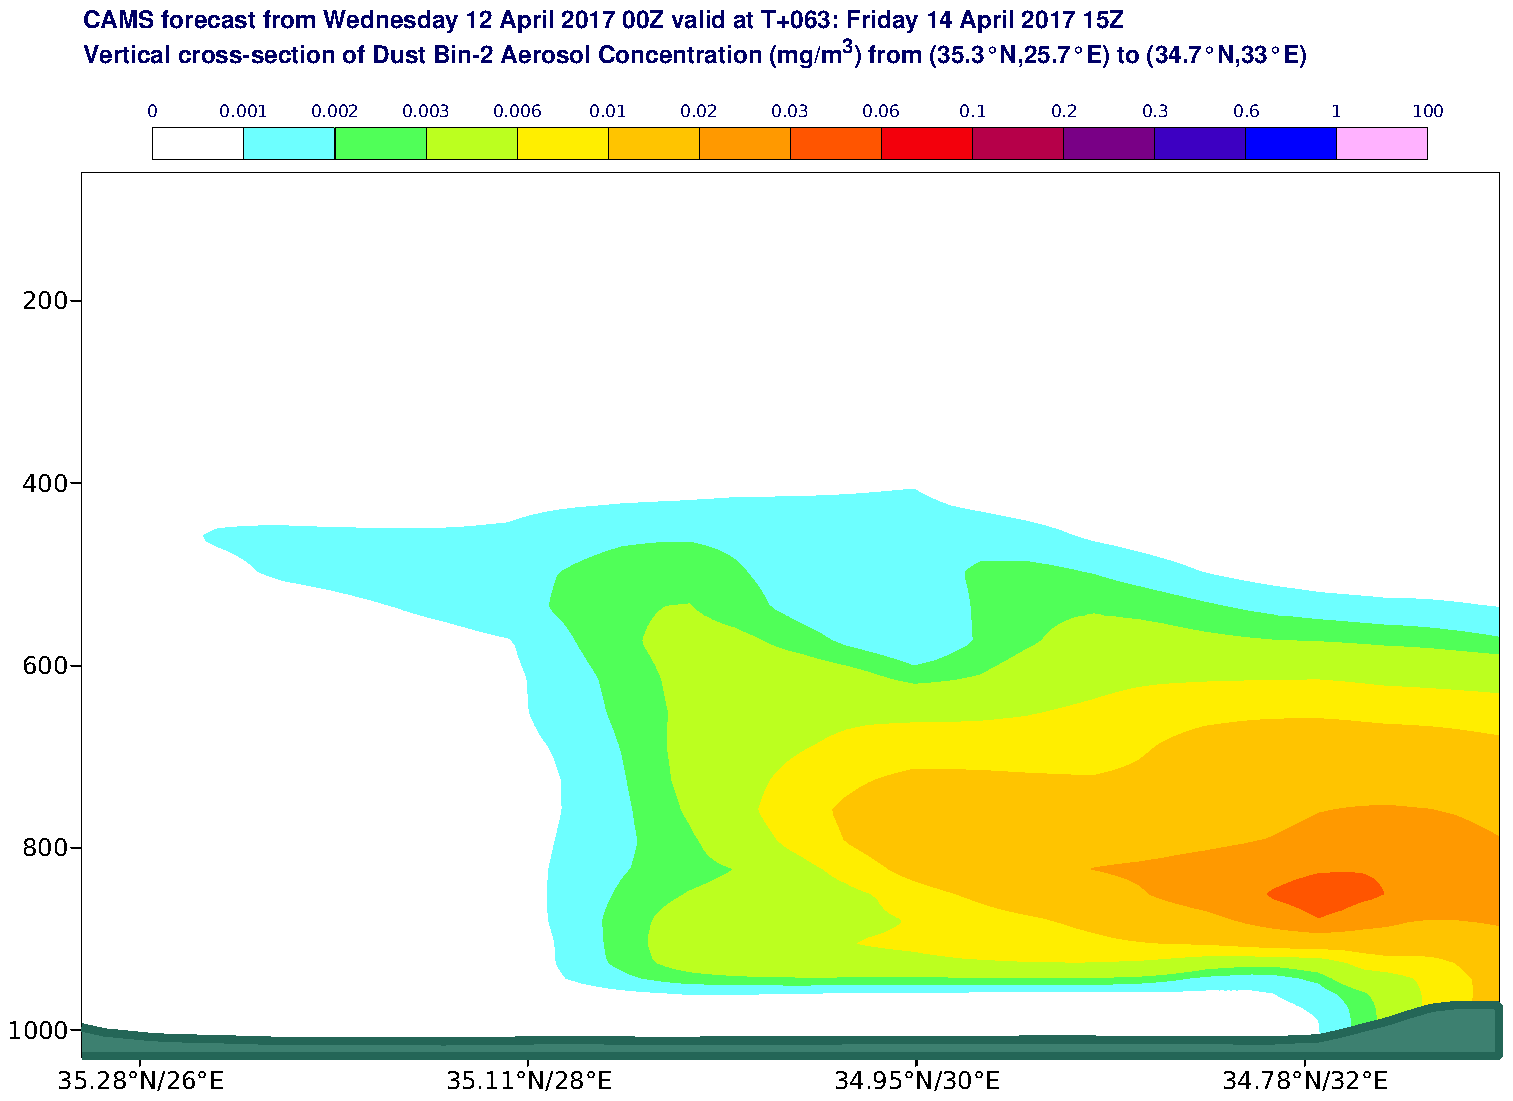 Vertical cross-section of Dust Bin-2 Aerosol Concentration (mg/m3) valid at T63 - 2017-04-14 15:00